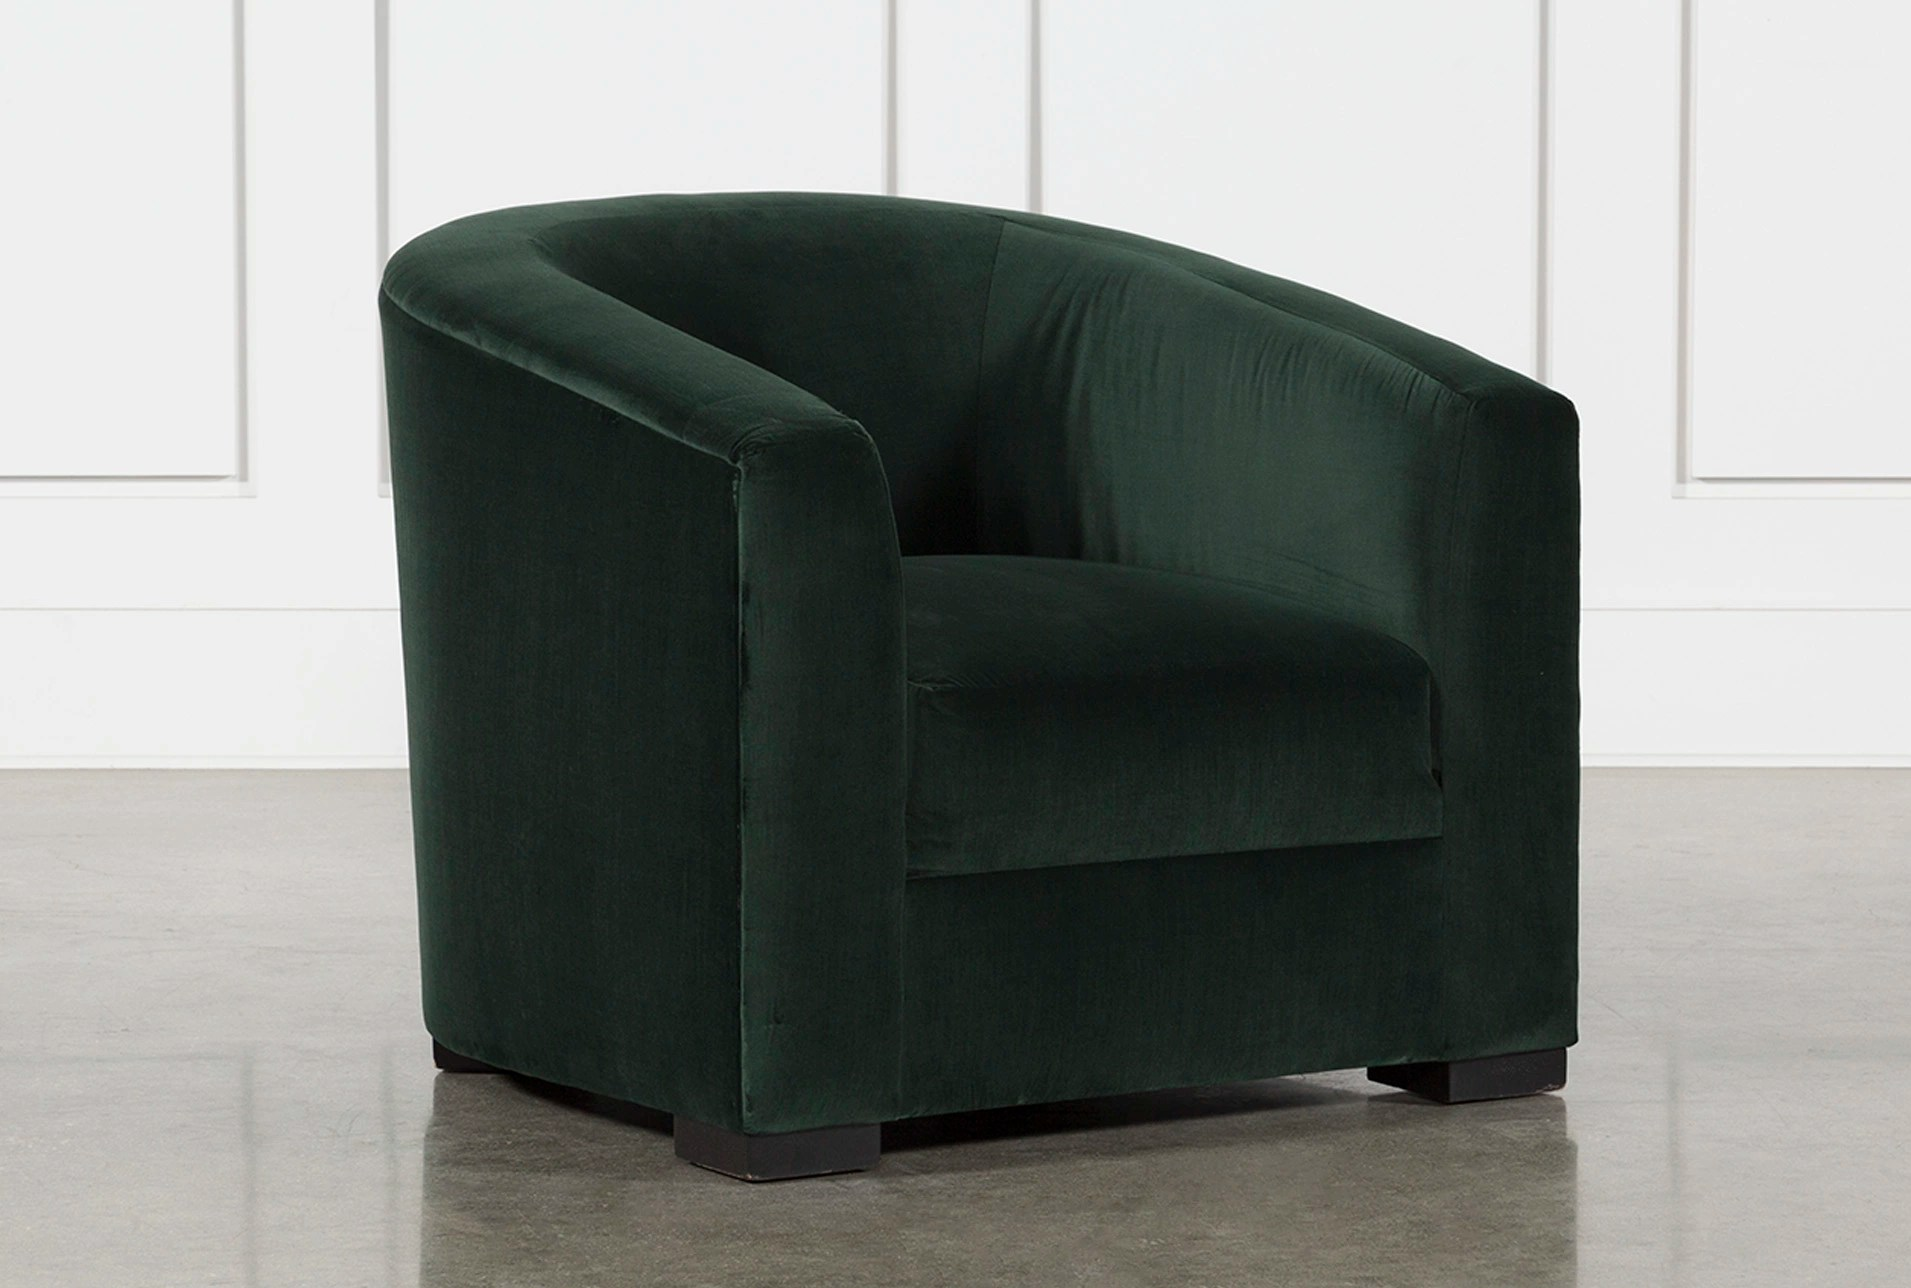 office club chairs rv captain seat covers accent for your home and living spaces emile lounge chair by nate berkus jeremiah brent